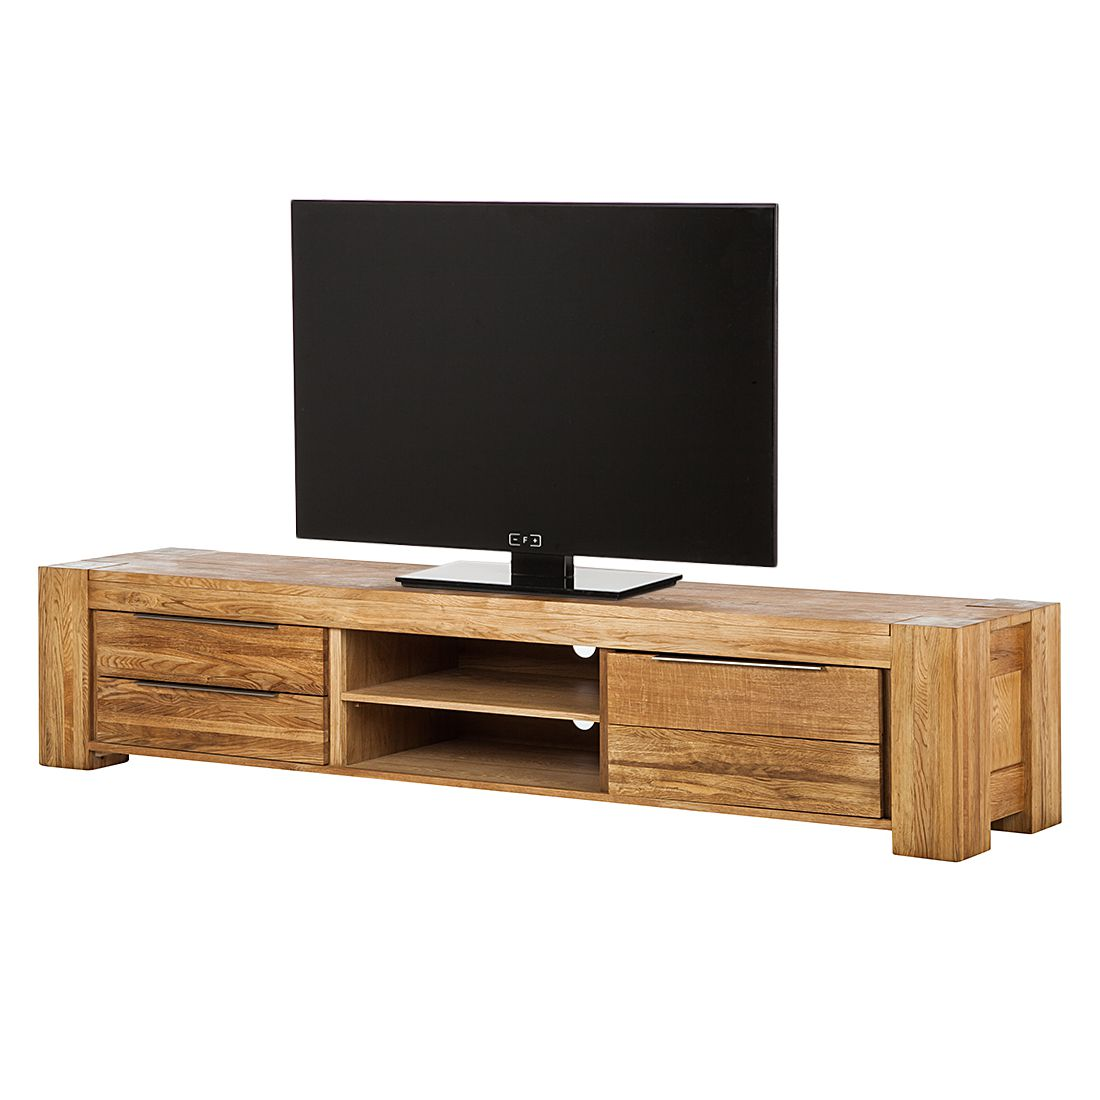 tv meubel eikenhout kopen online internetwinkel. Black Bedroom Furniture Sets. Home Design Ideas